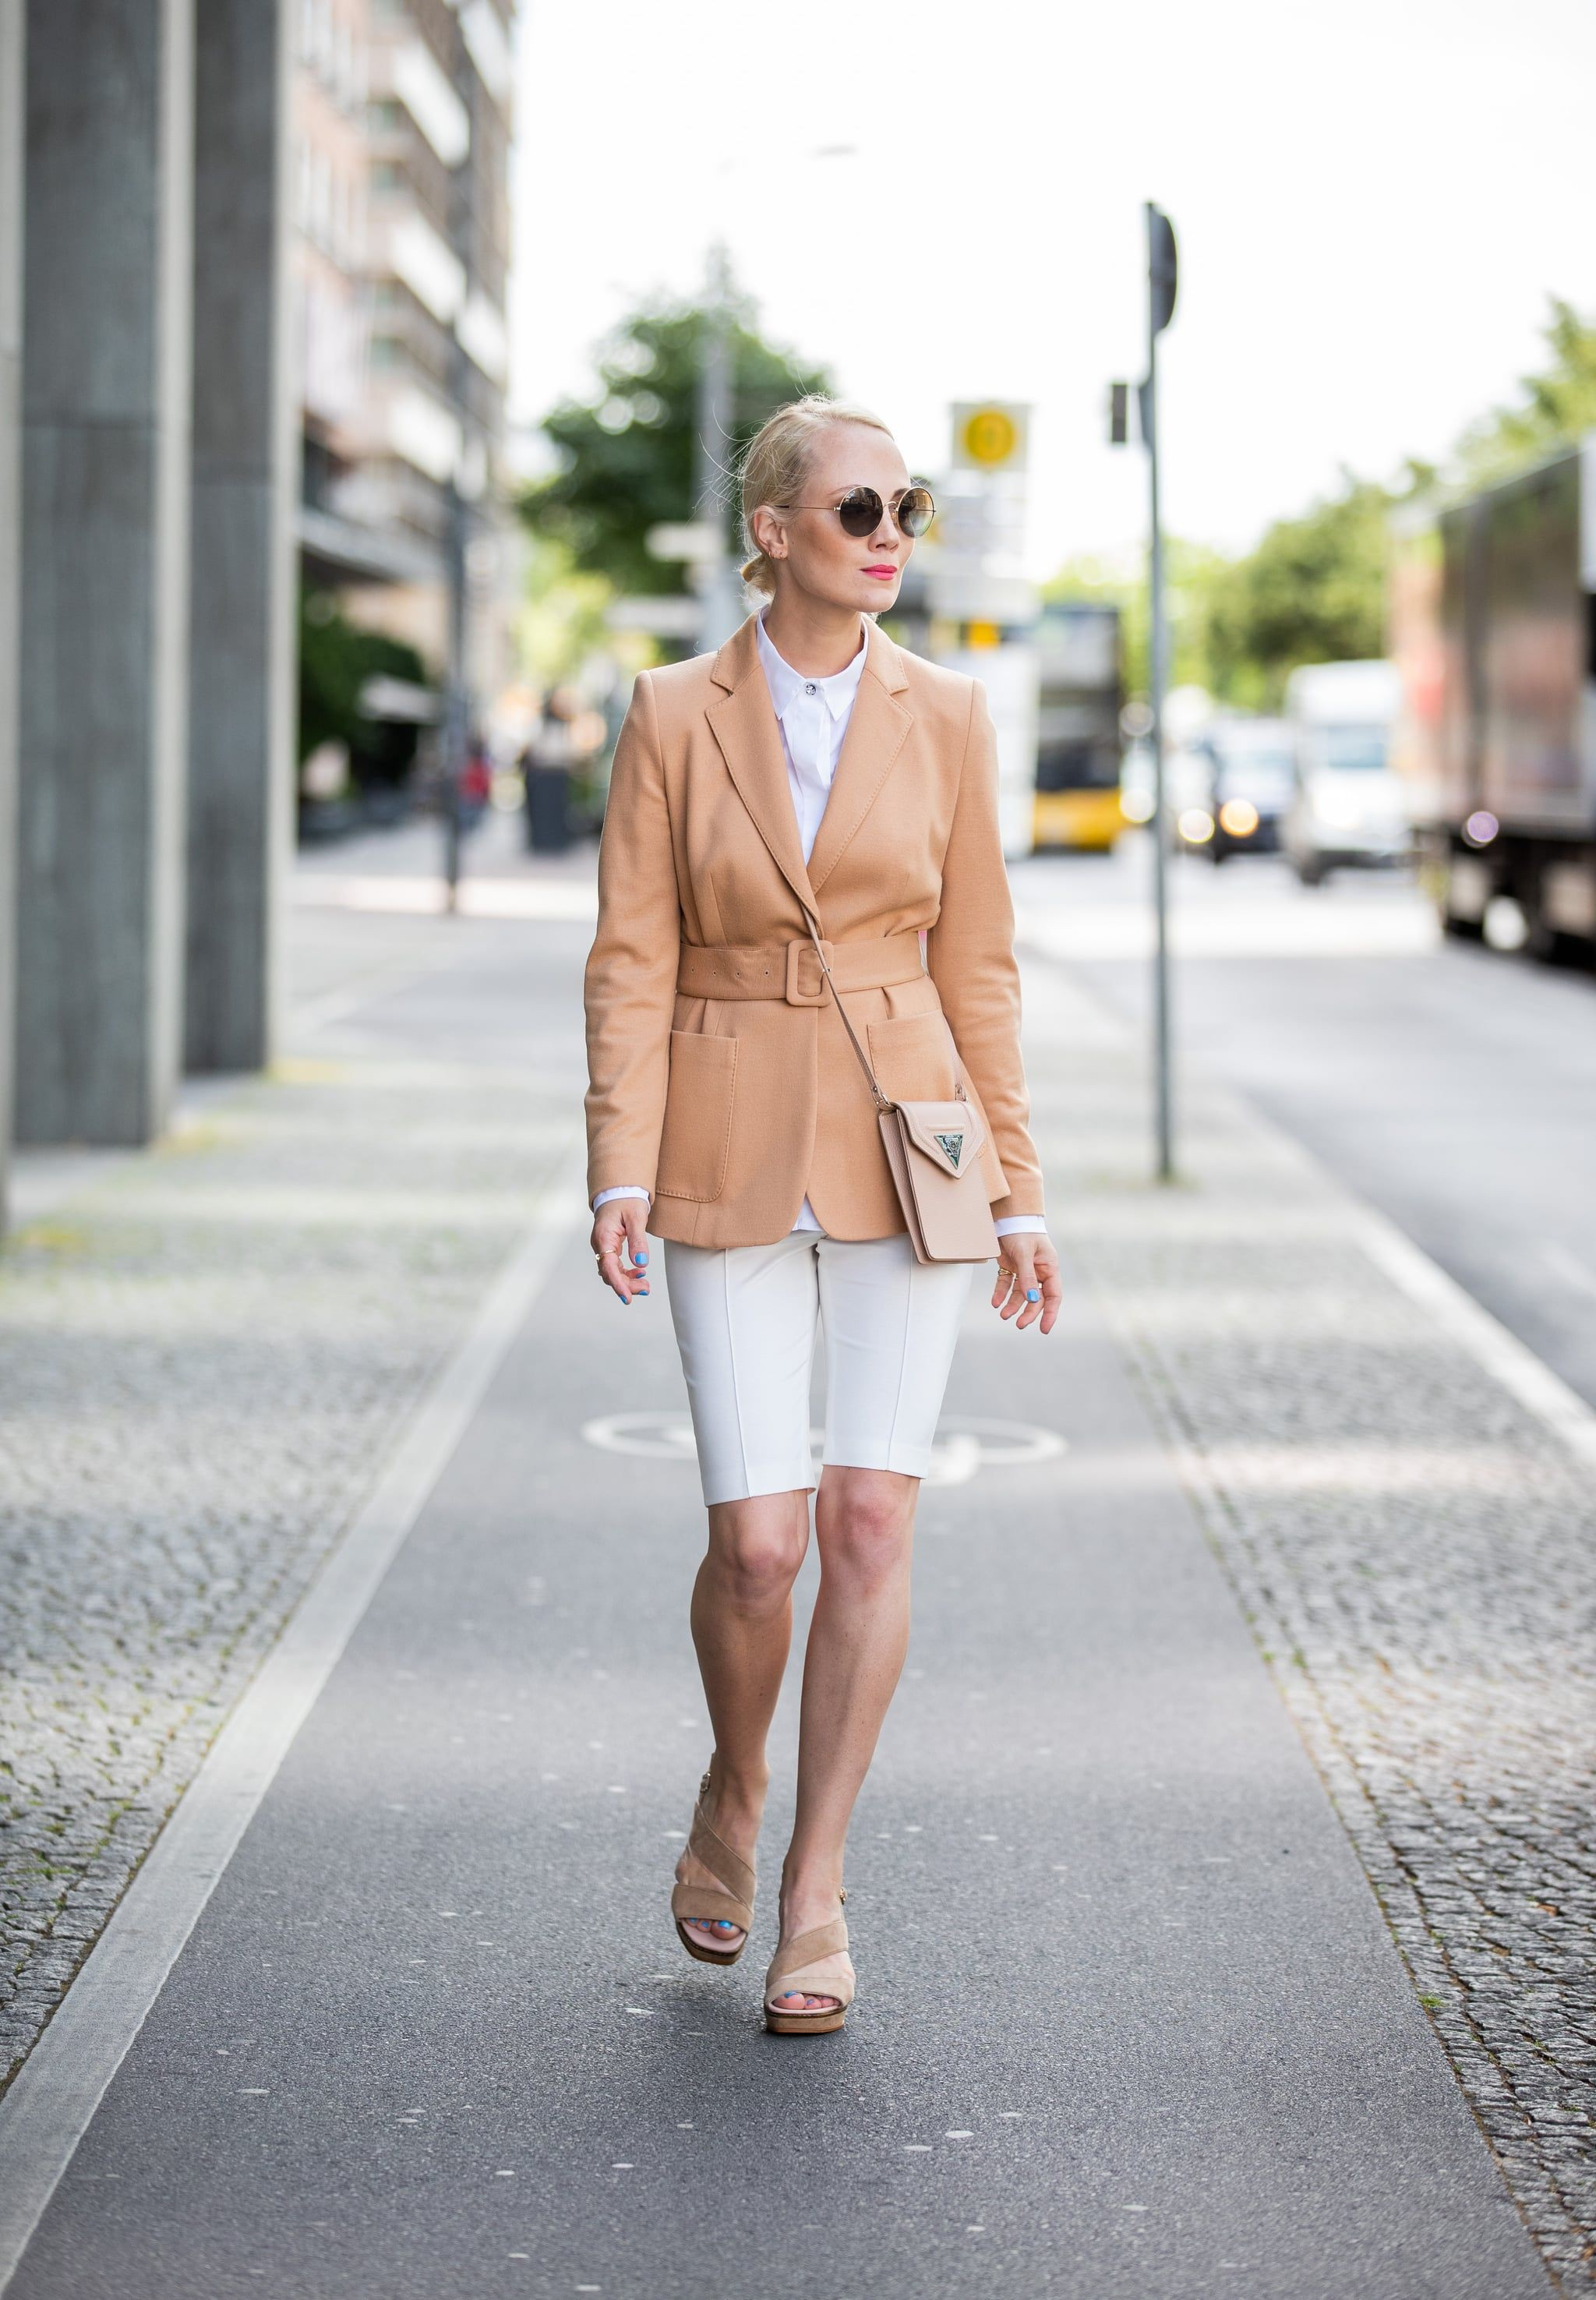 White and pink colour combination with cycling shorts, jacket, shorts